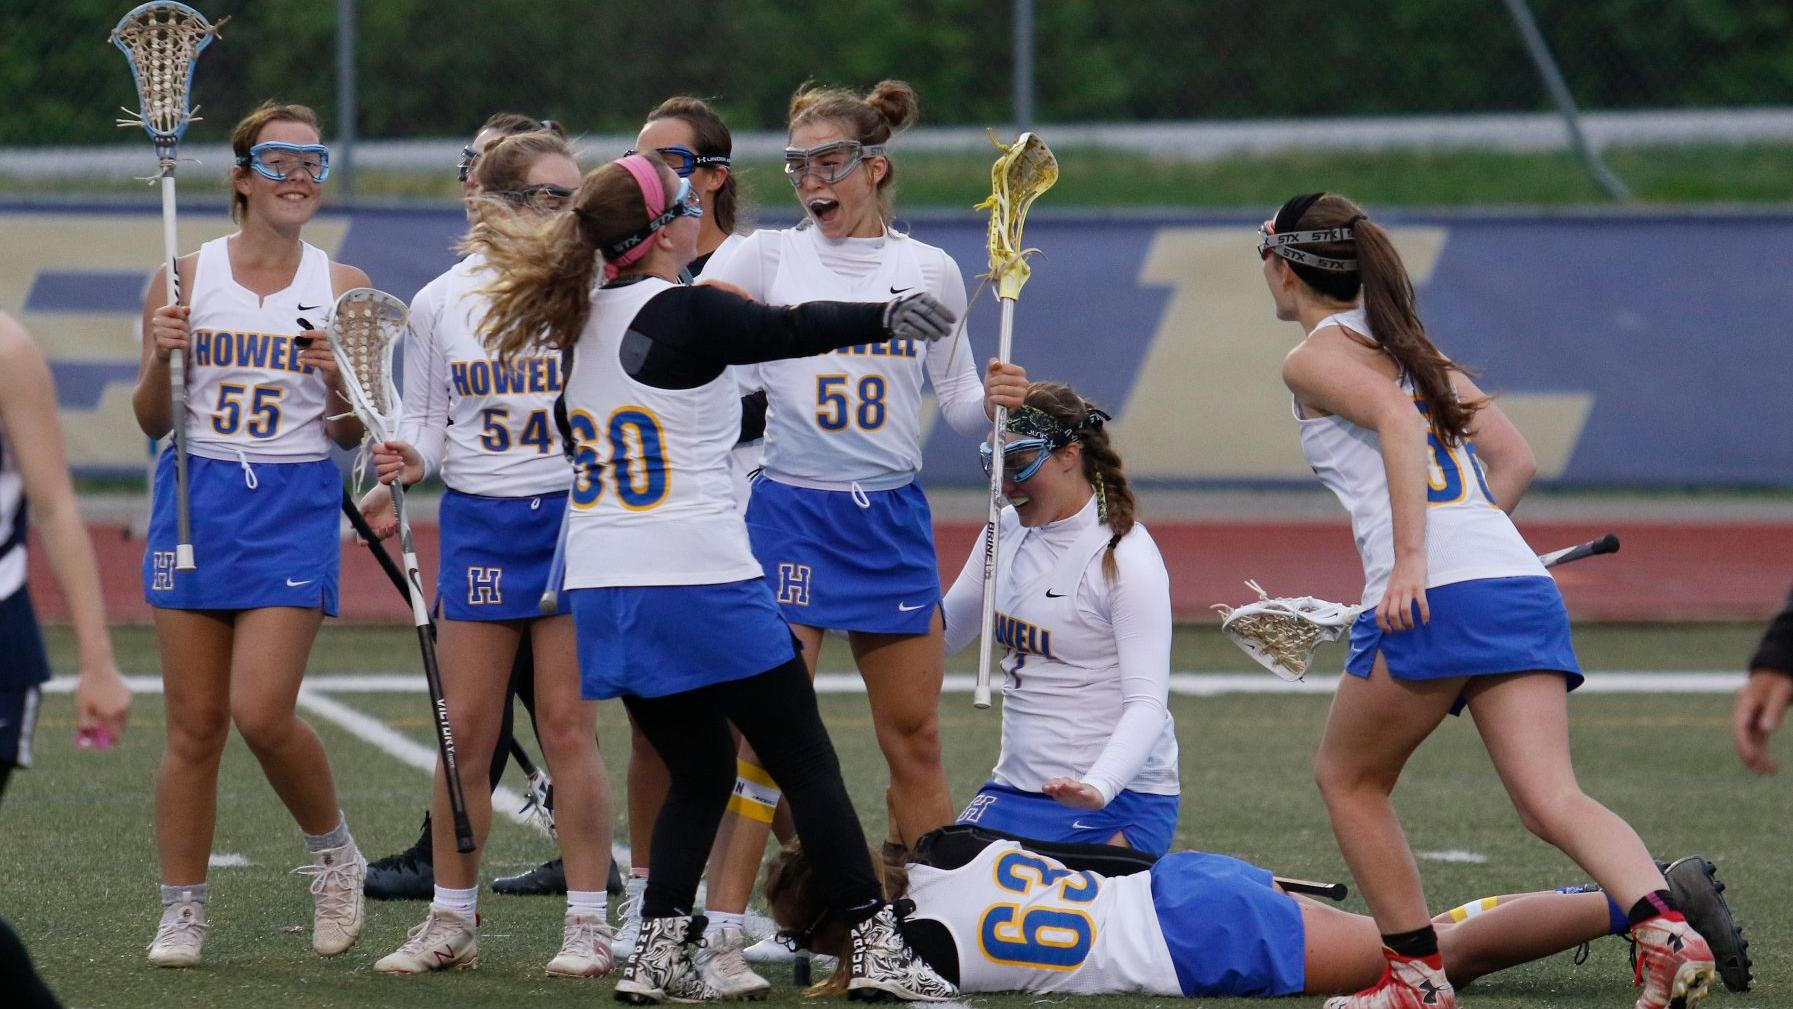 Eberwine's dramatic goal lifts Francis Howell to rivalry win against Howell Central